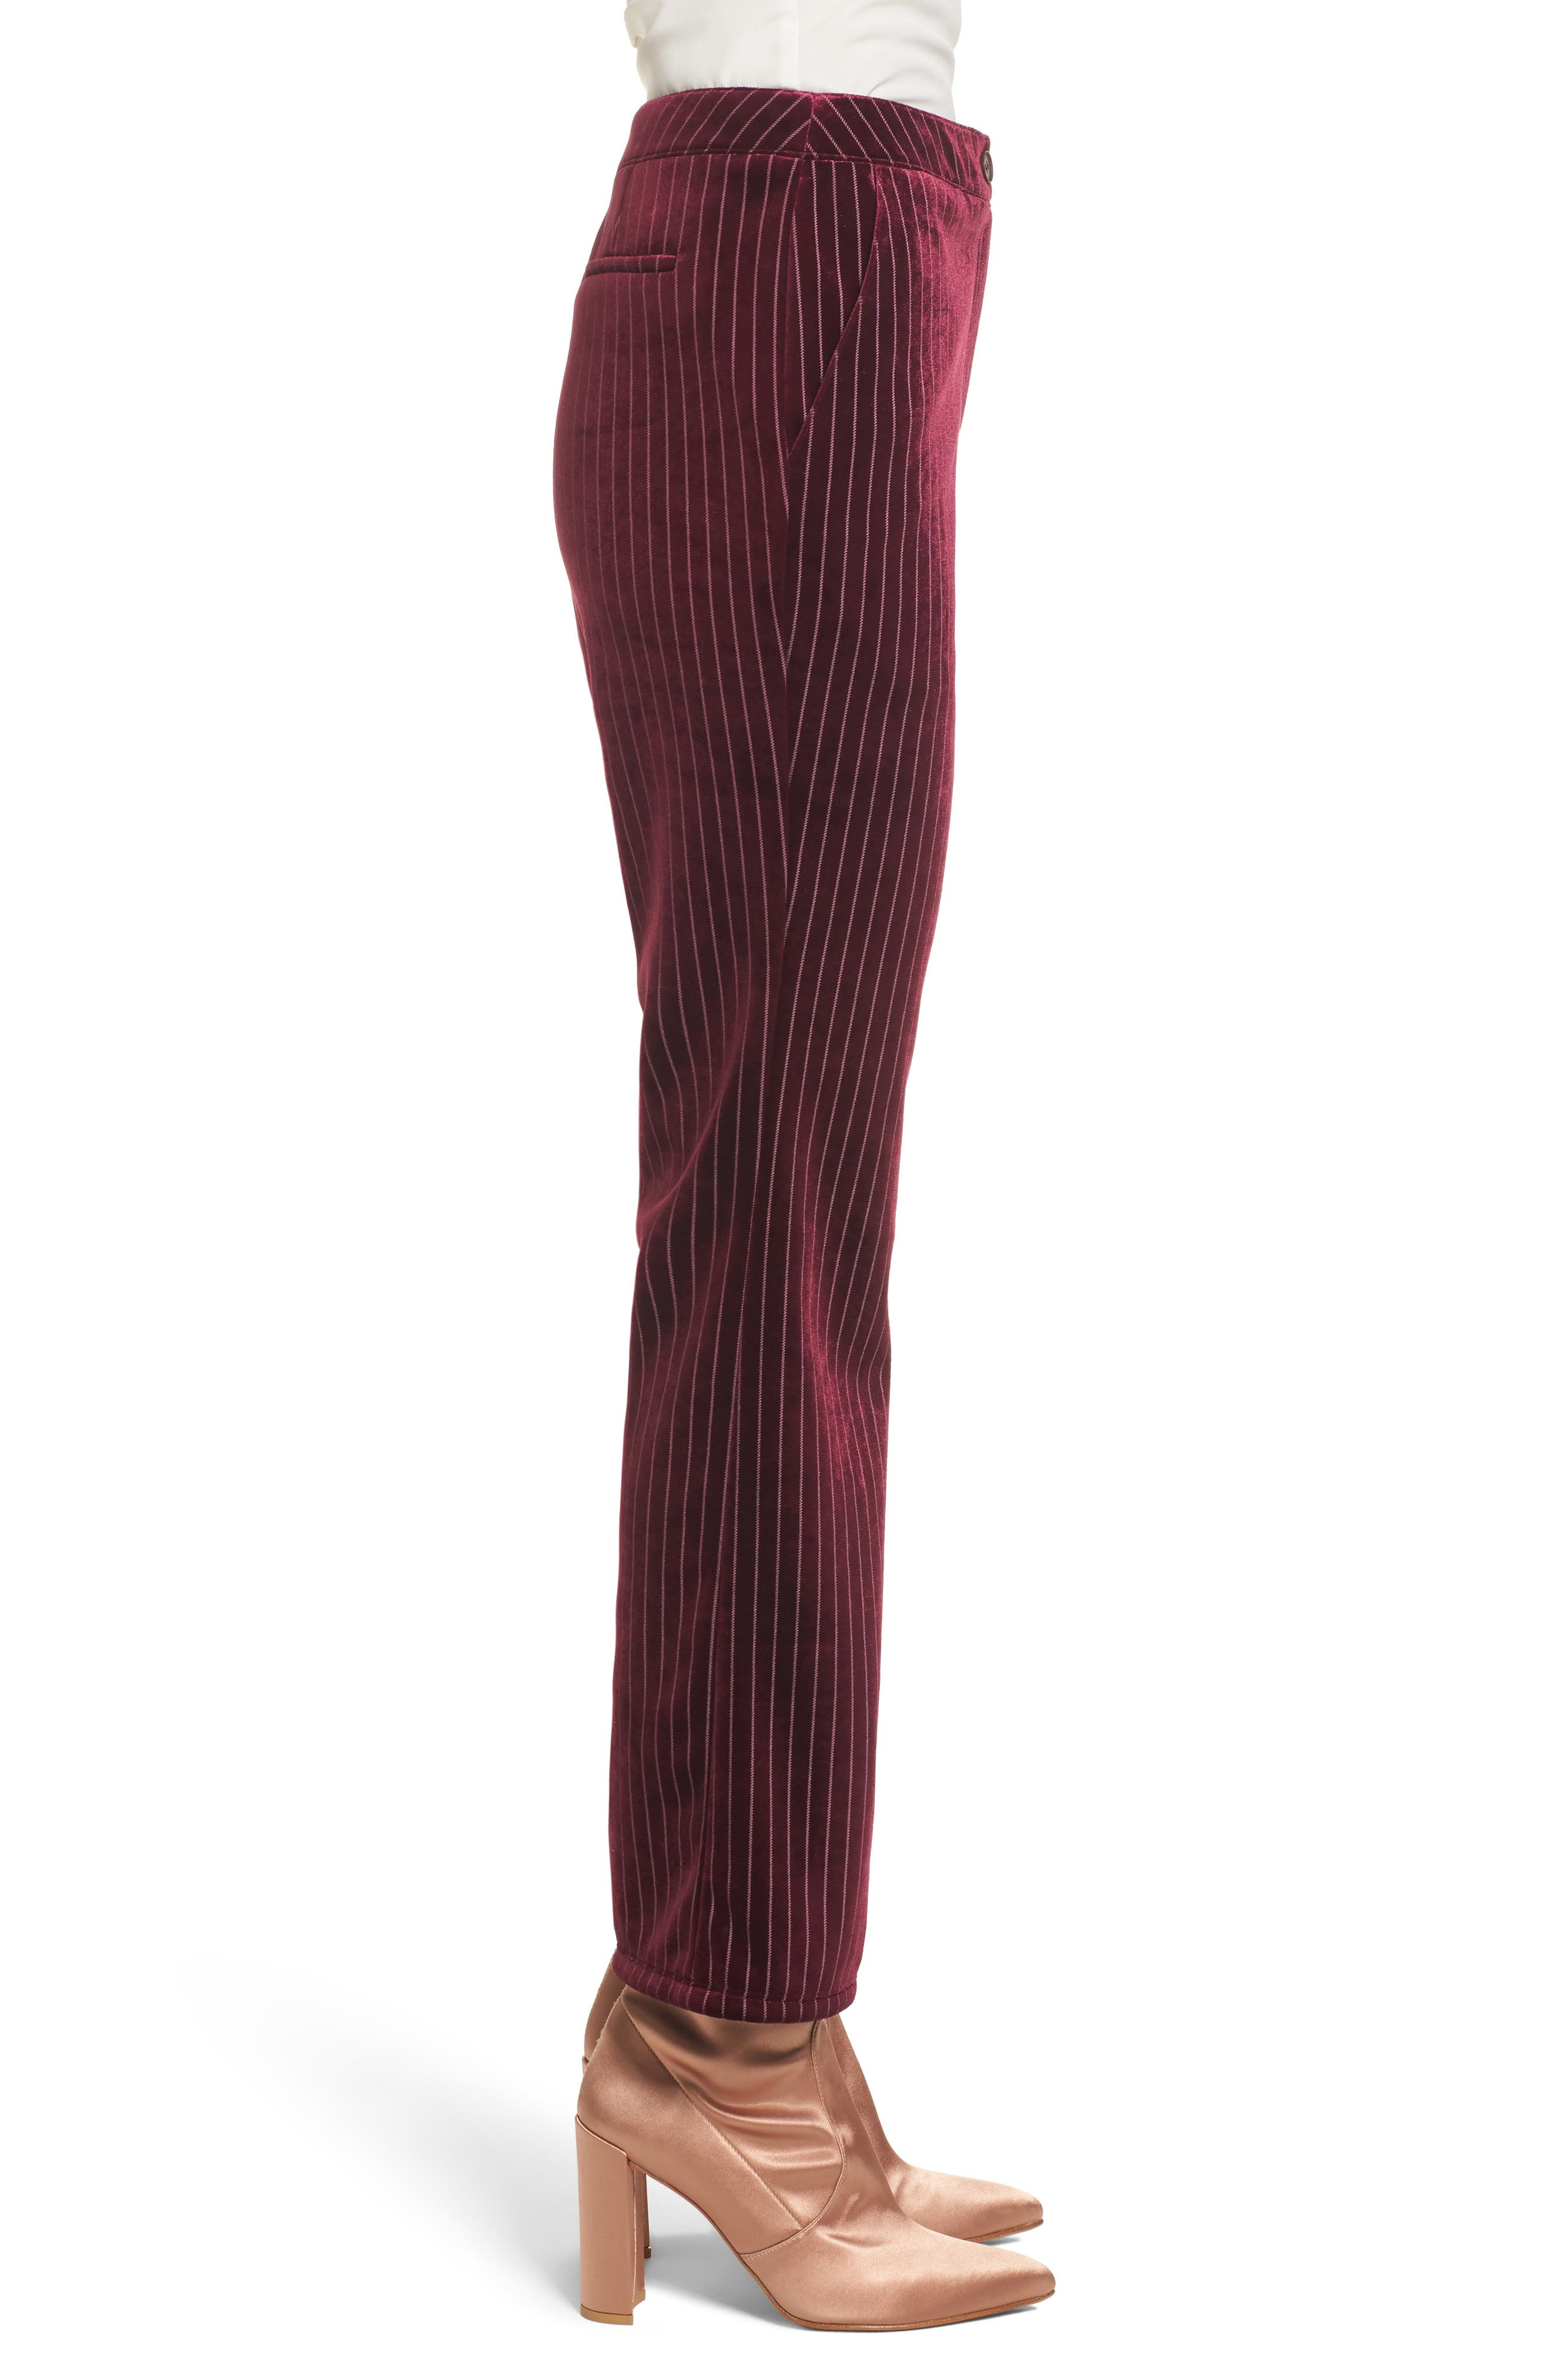 Velour Ankle Trousers,                             Alternate thumbnail 3, color,                             Red Tannin Dotted Stripe